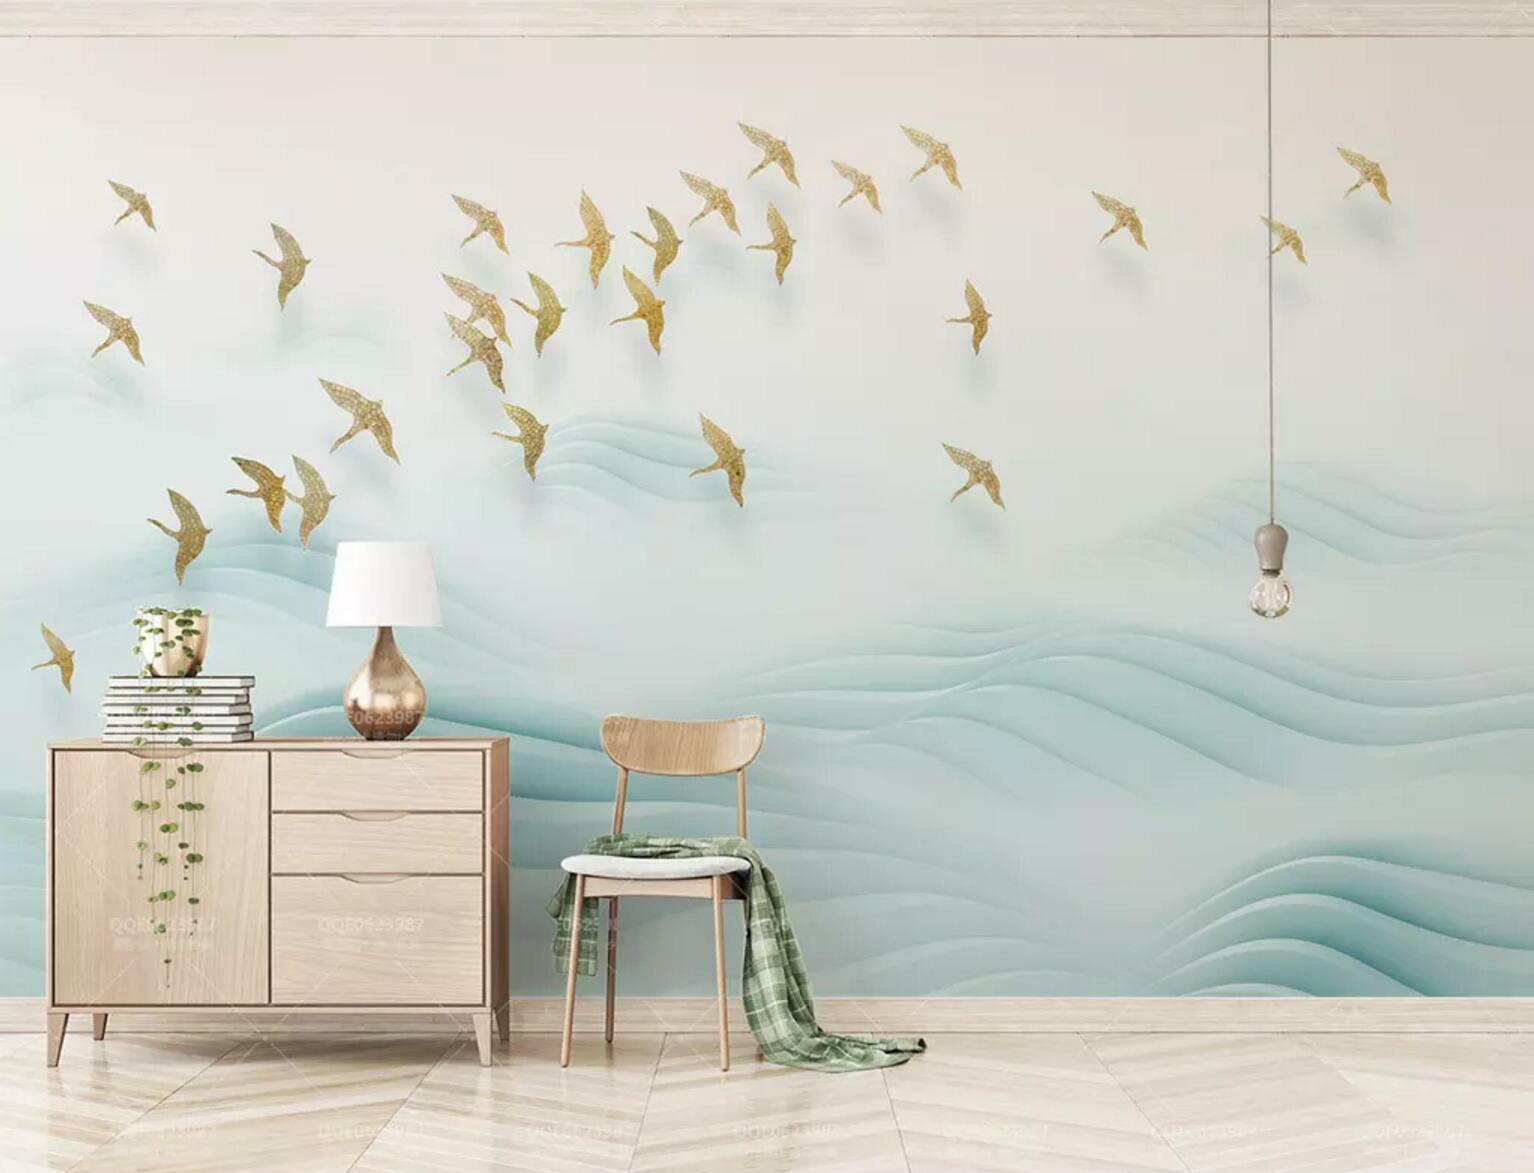 3D Bird Group Hills 4 Wall Paper Exclusive MXY Wallpaper Mural Decal Indoor wall